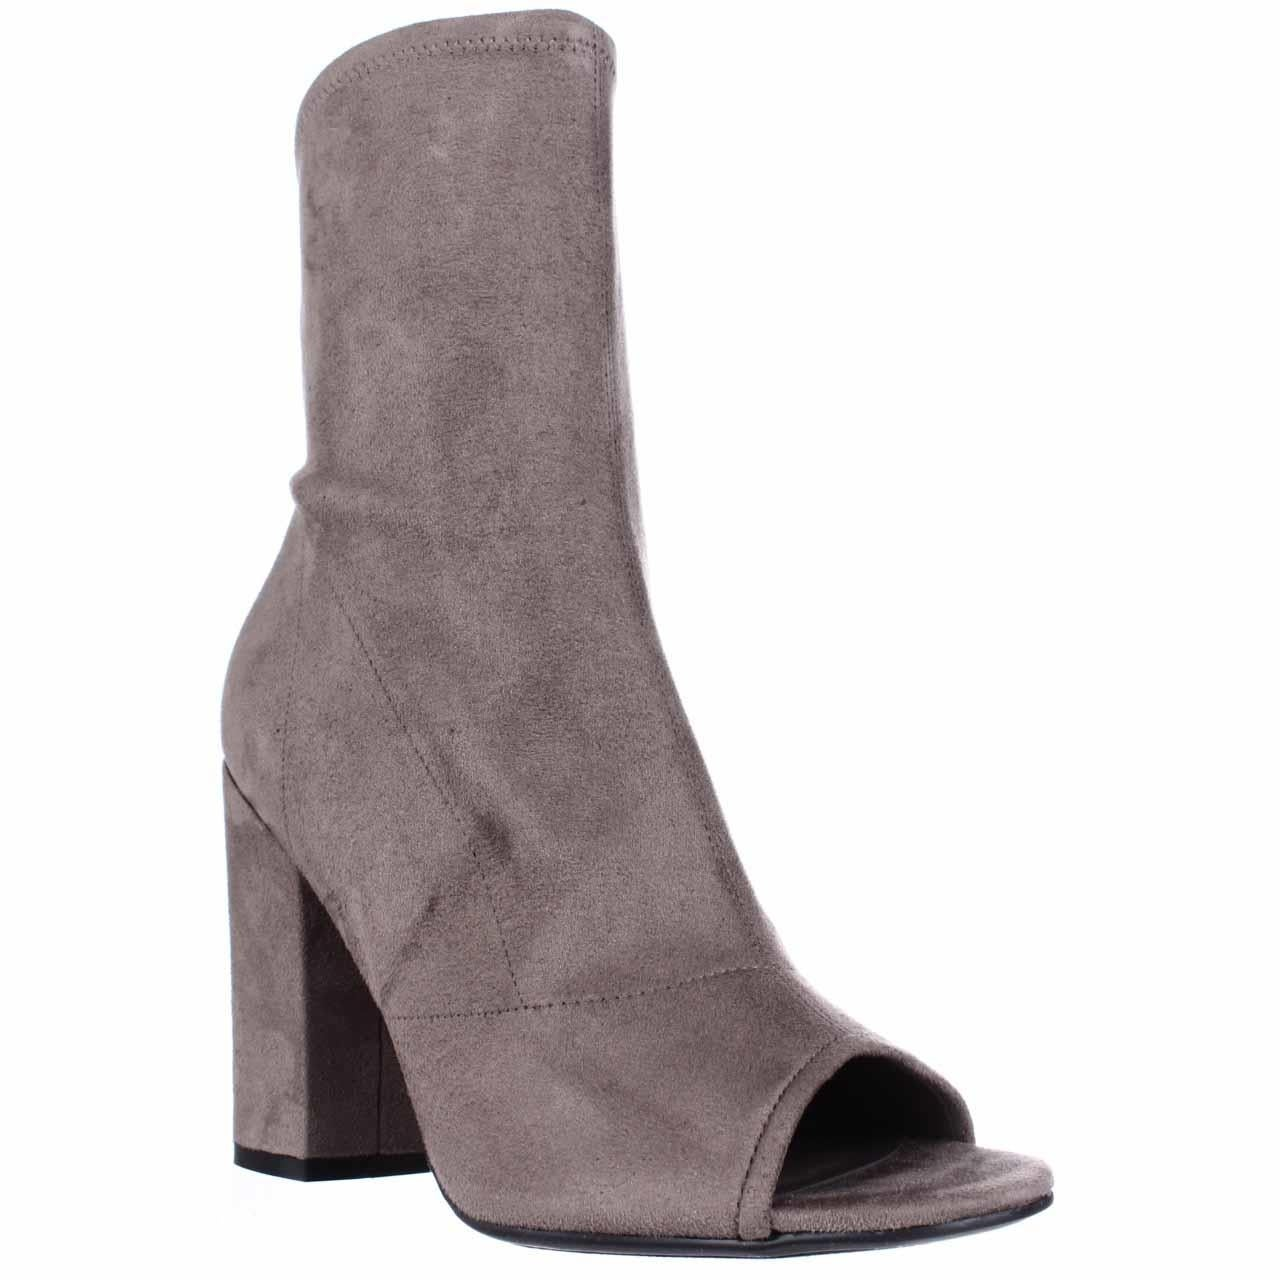 9f58af6f33 GUESS Galyna Peep Toe Block Heel Tall Ankle Booties, Medium Natural - 9 US